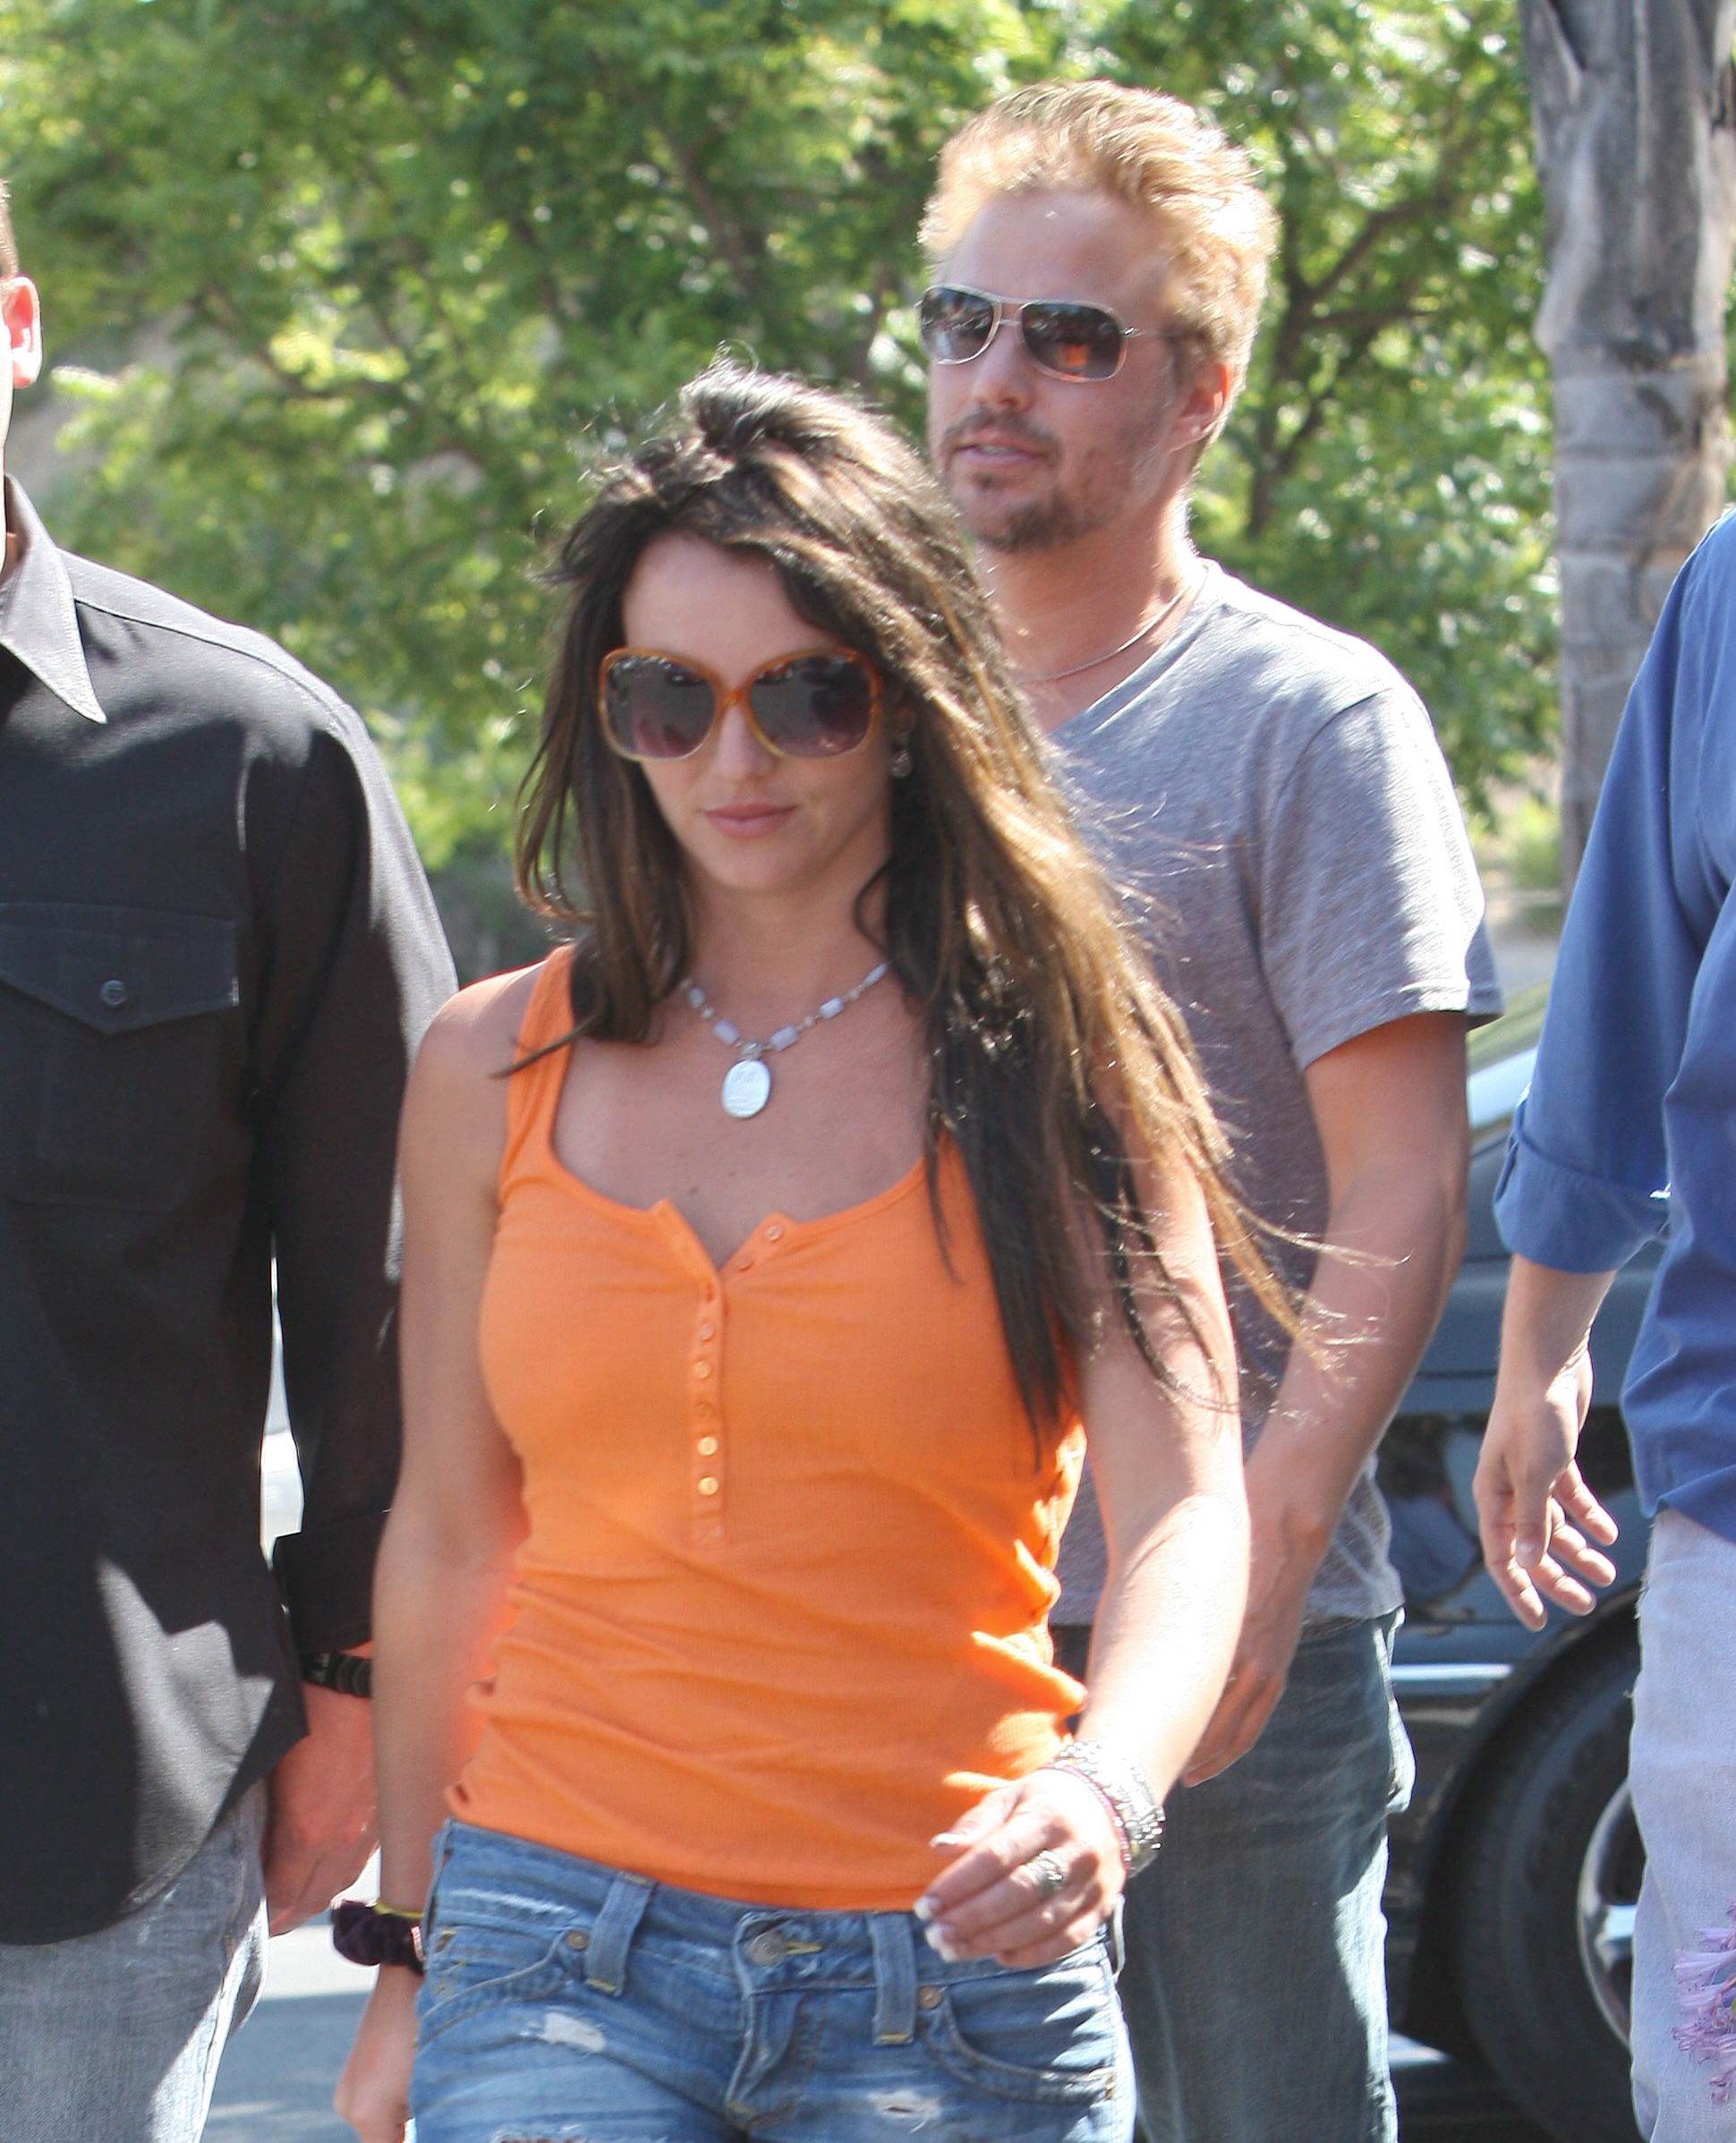 52922_celeb-city.org-The_Elder-Britney_Spears_2009-06-28_-_went_to_the_Bed_Bath_and_Beyond_7140_122_74lo.jpg